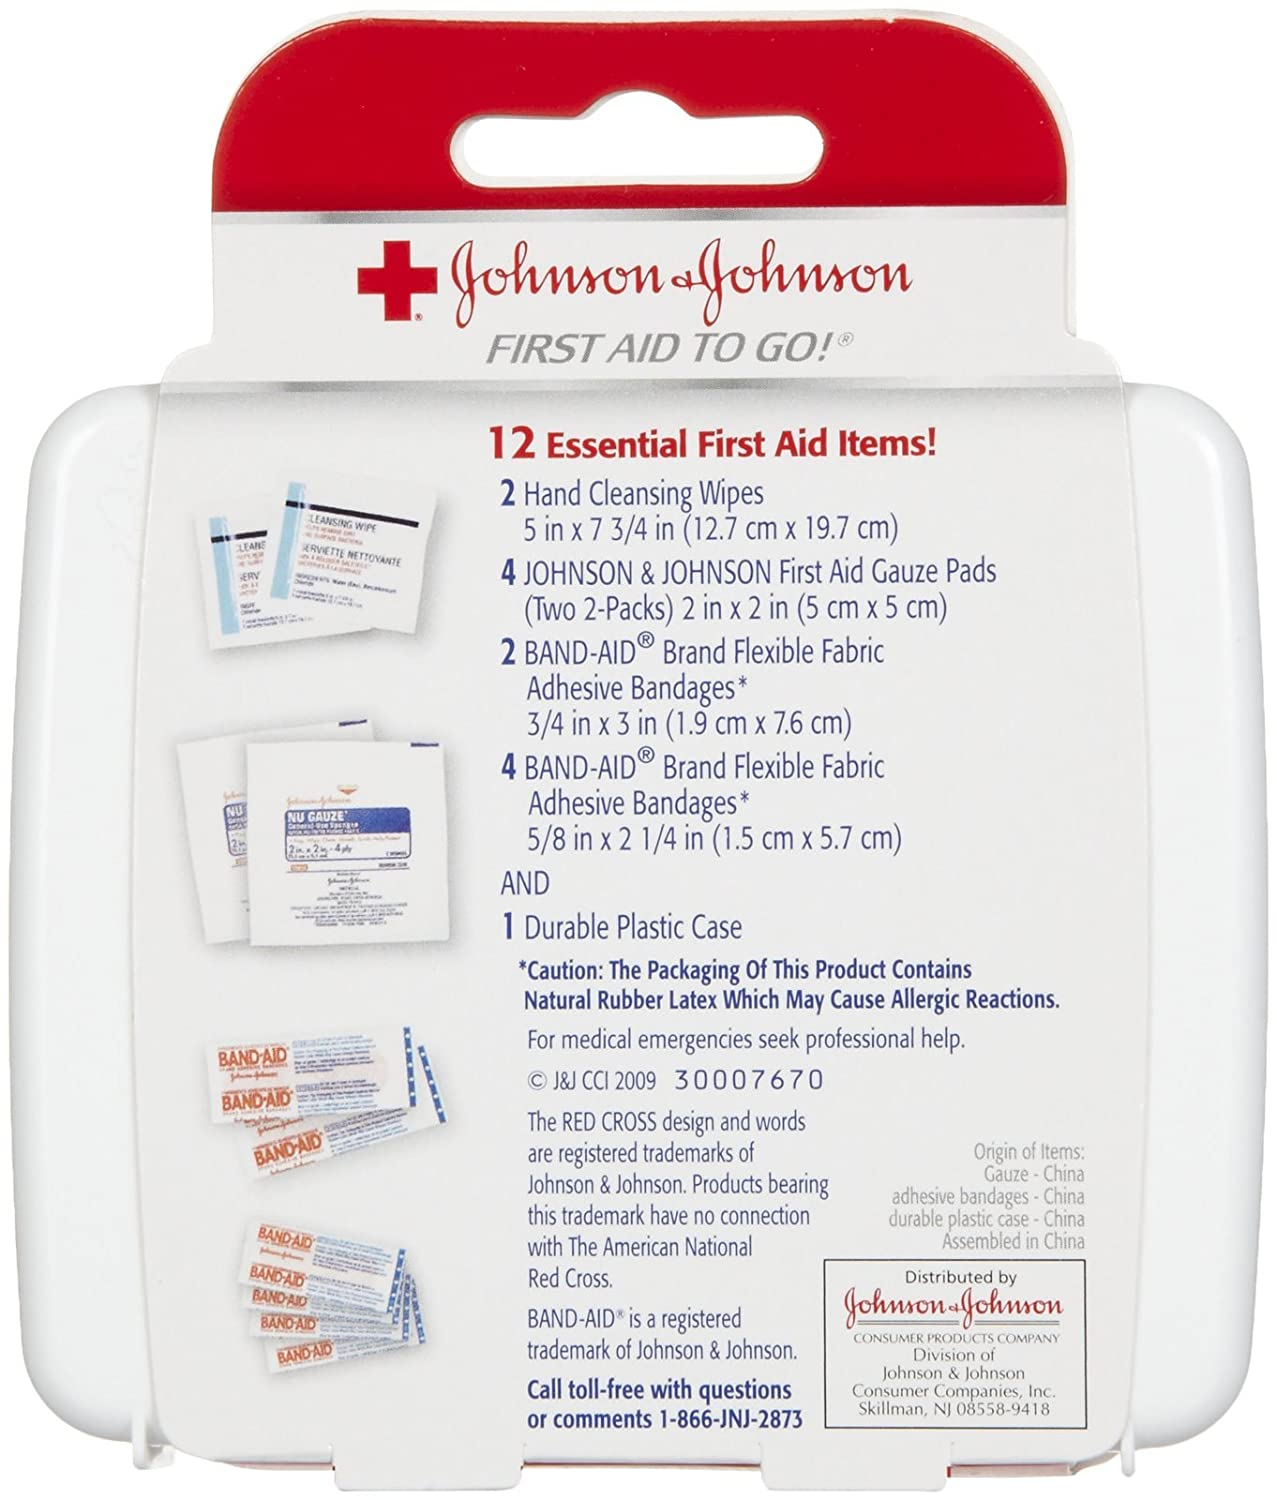 Amazon.com : Johnson & Johnson First First Aid Kit Travel Size (Pack of 3 -- First Aid Kit for Car, Office, Purse) : Beauty